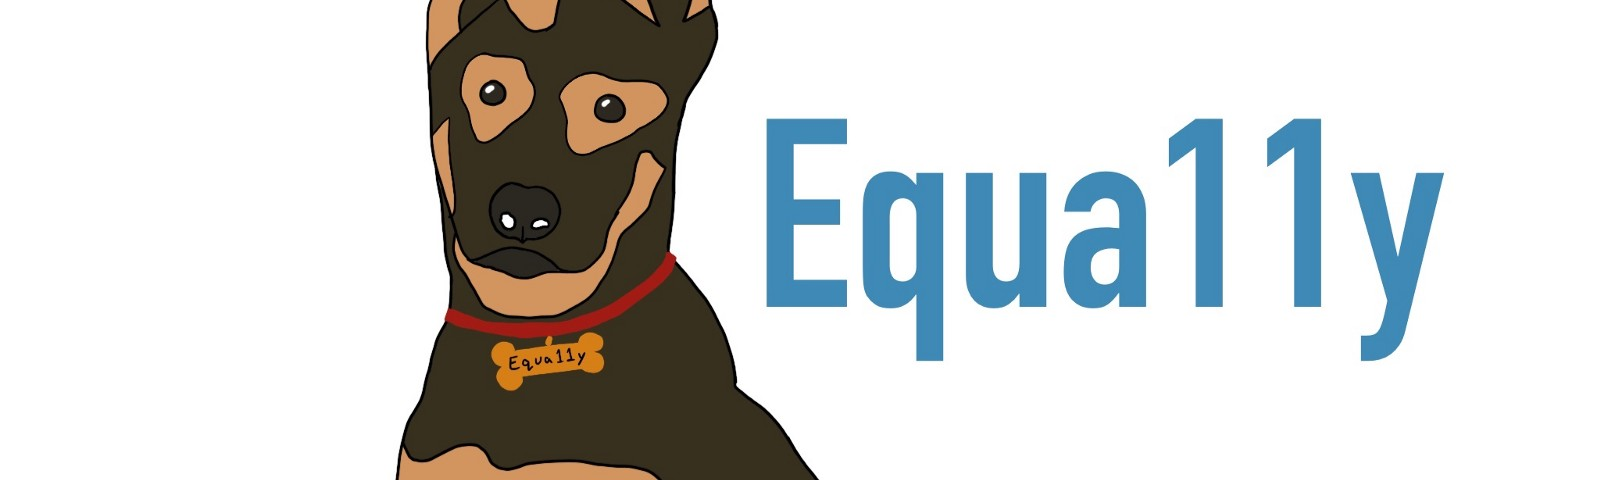 """Company logo of dog with one ear down and one ear perked with the word """"equa11y"""" (pronounced equally) next to it"""